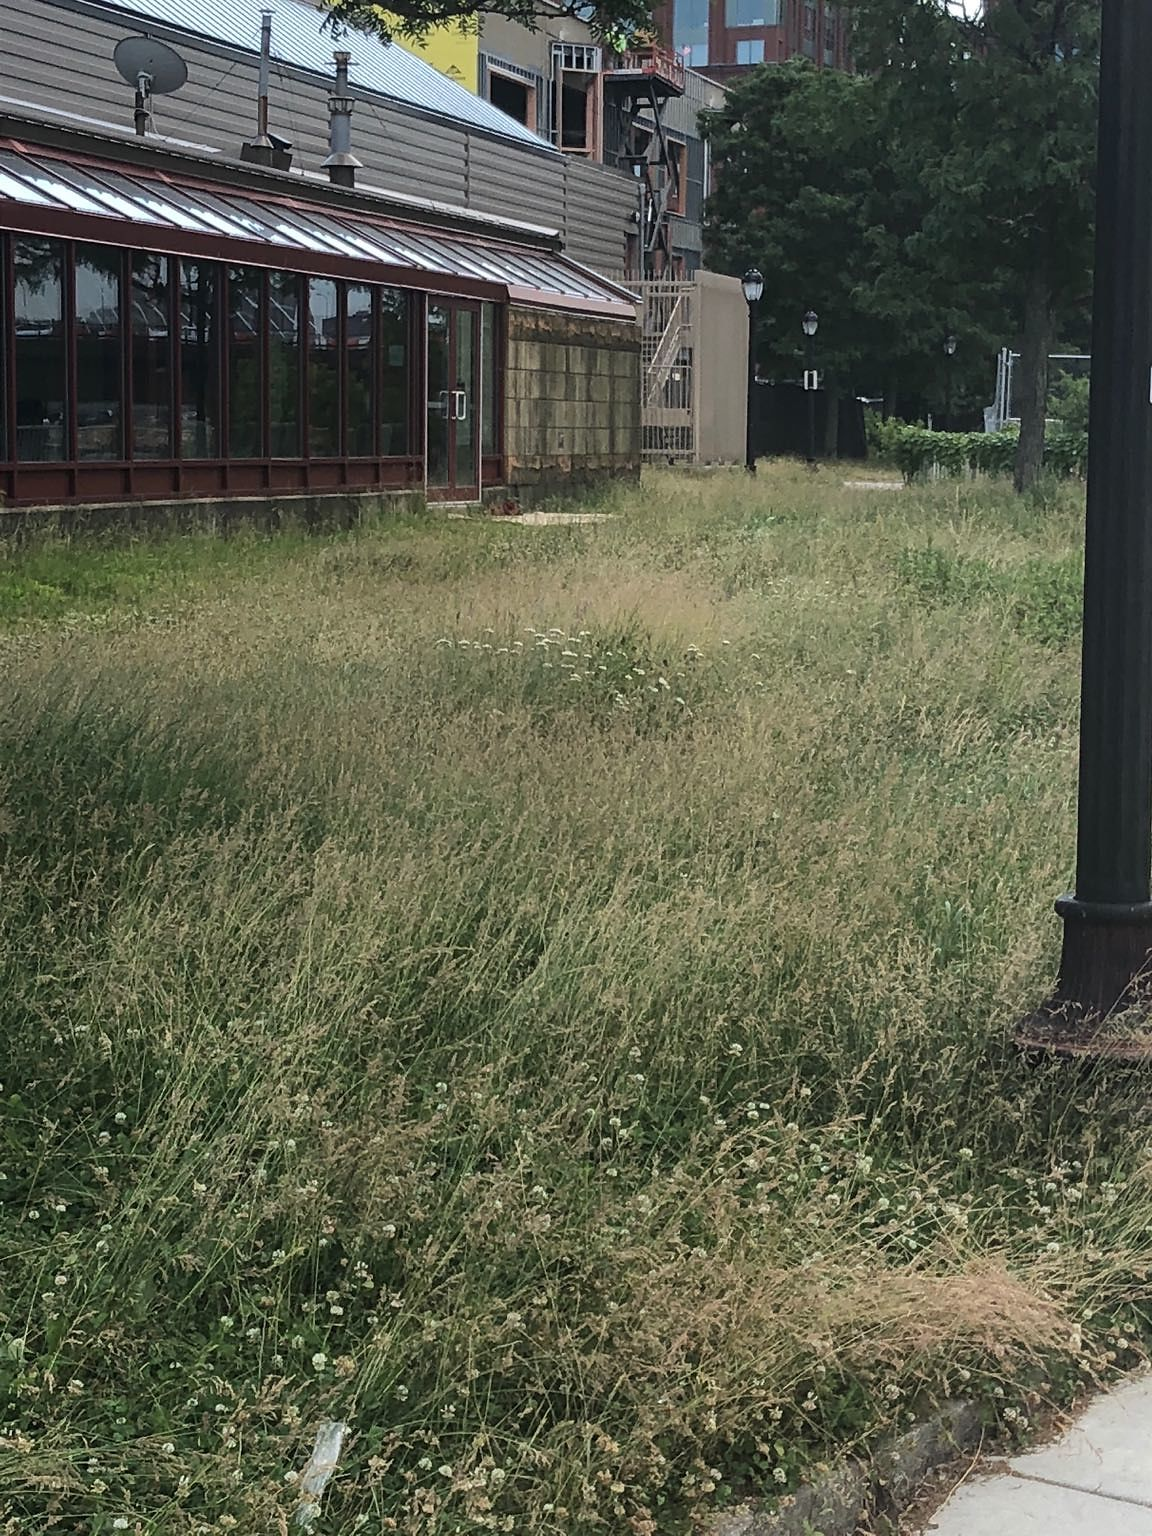 The Lawn Outside Of The North End Skating Rink Has Overgrown.